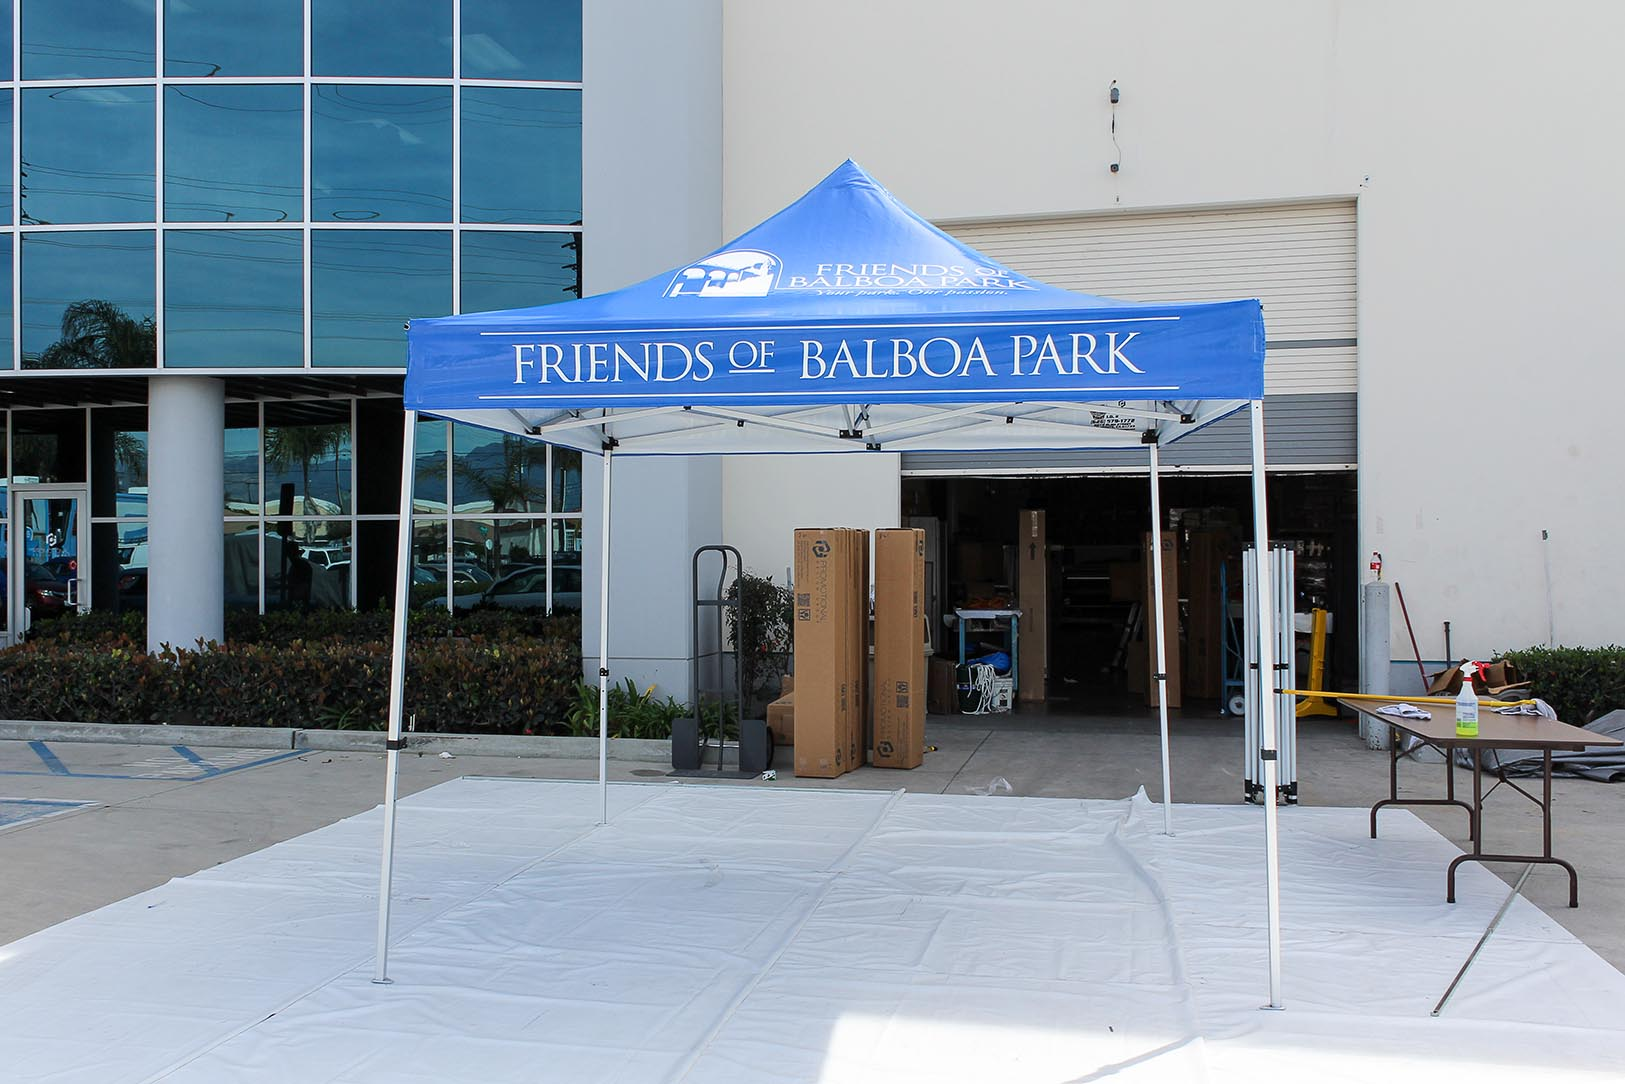 friends-of-balboa-park-pop-up-tent